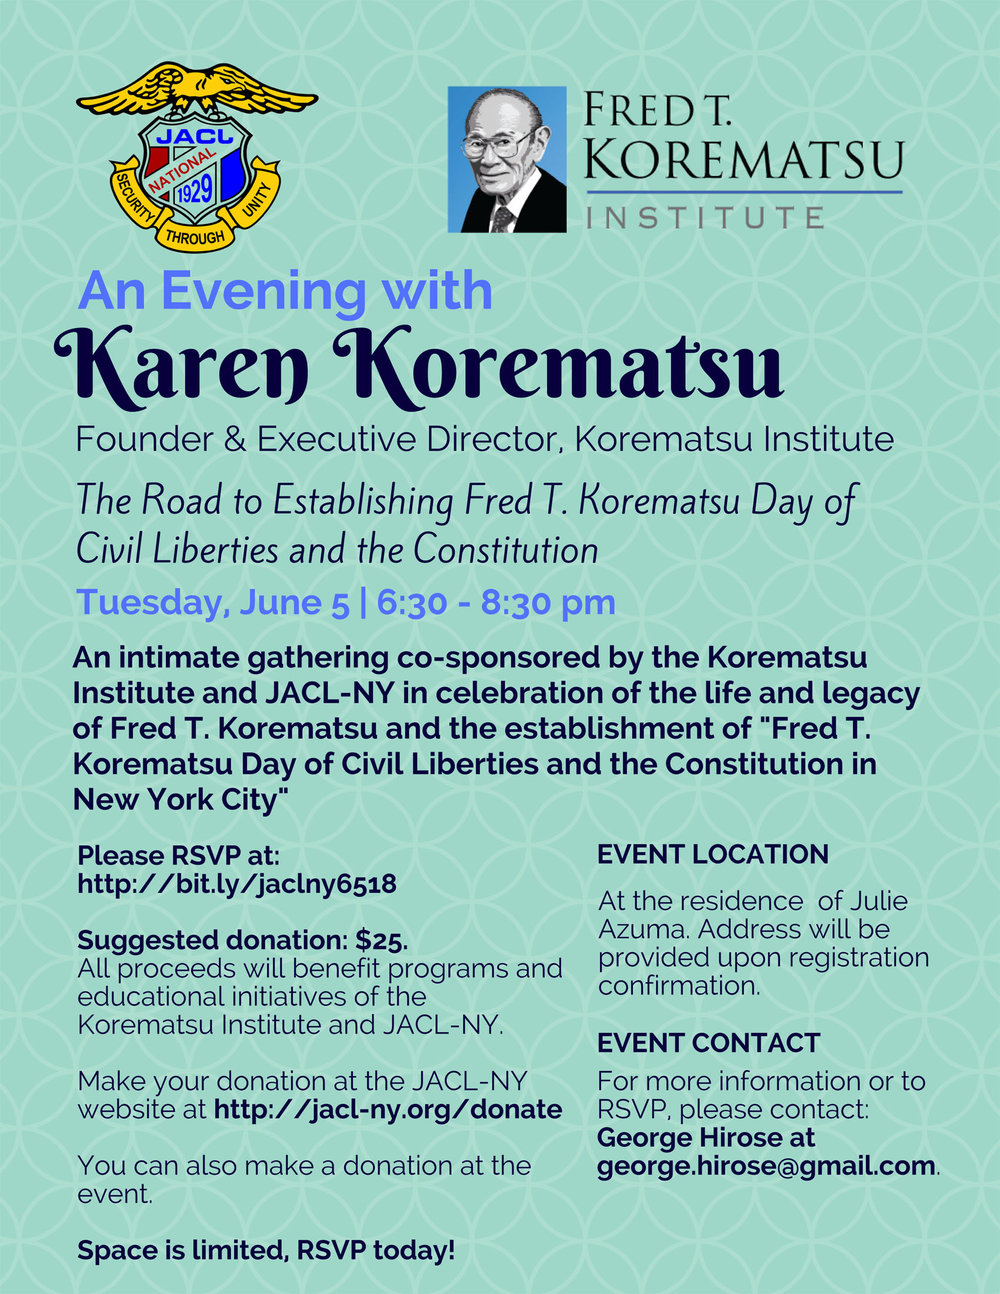 Evening w Karen Korematsu NYC 6518 pdf.jpg